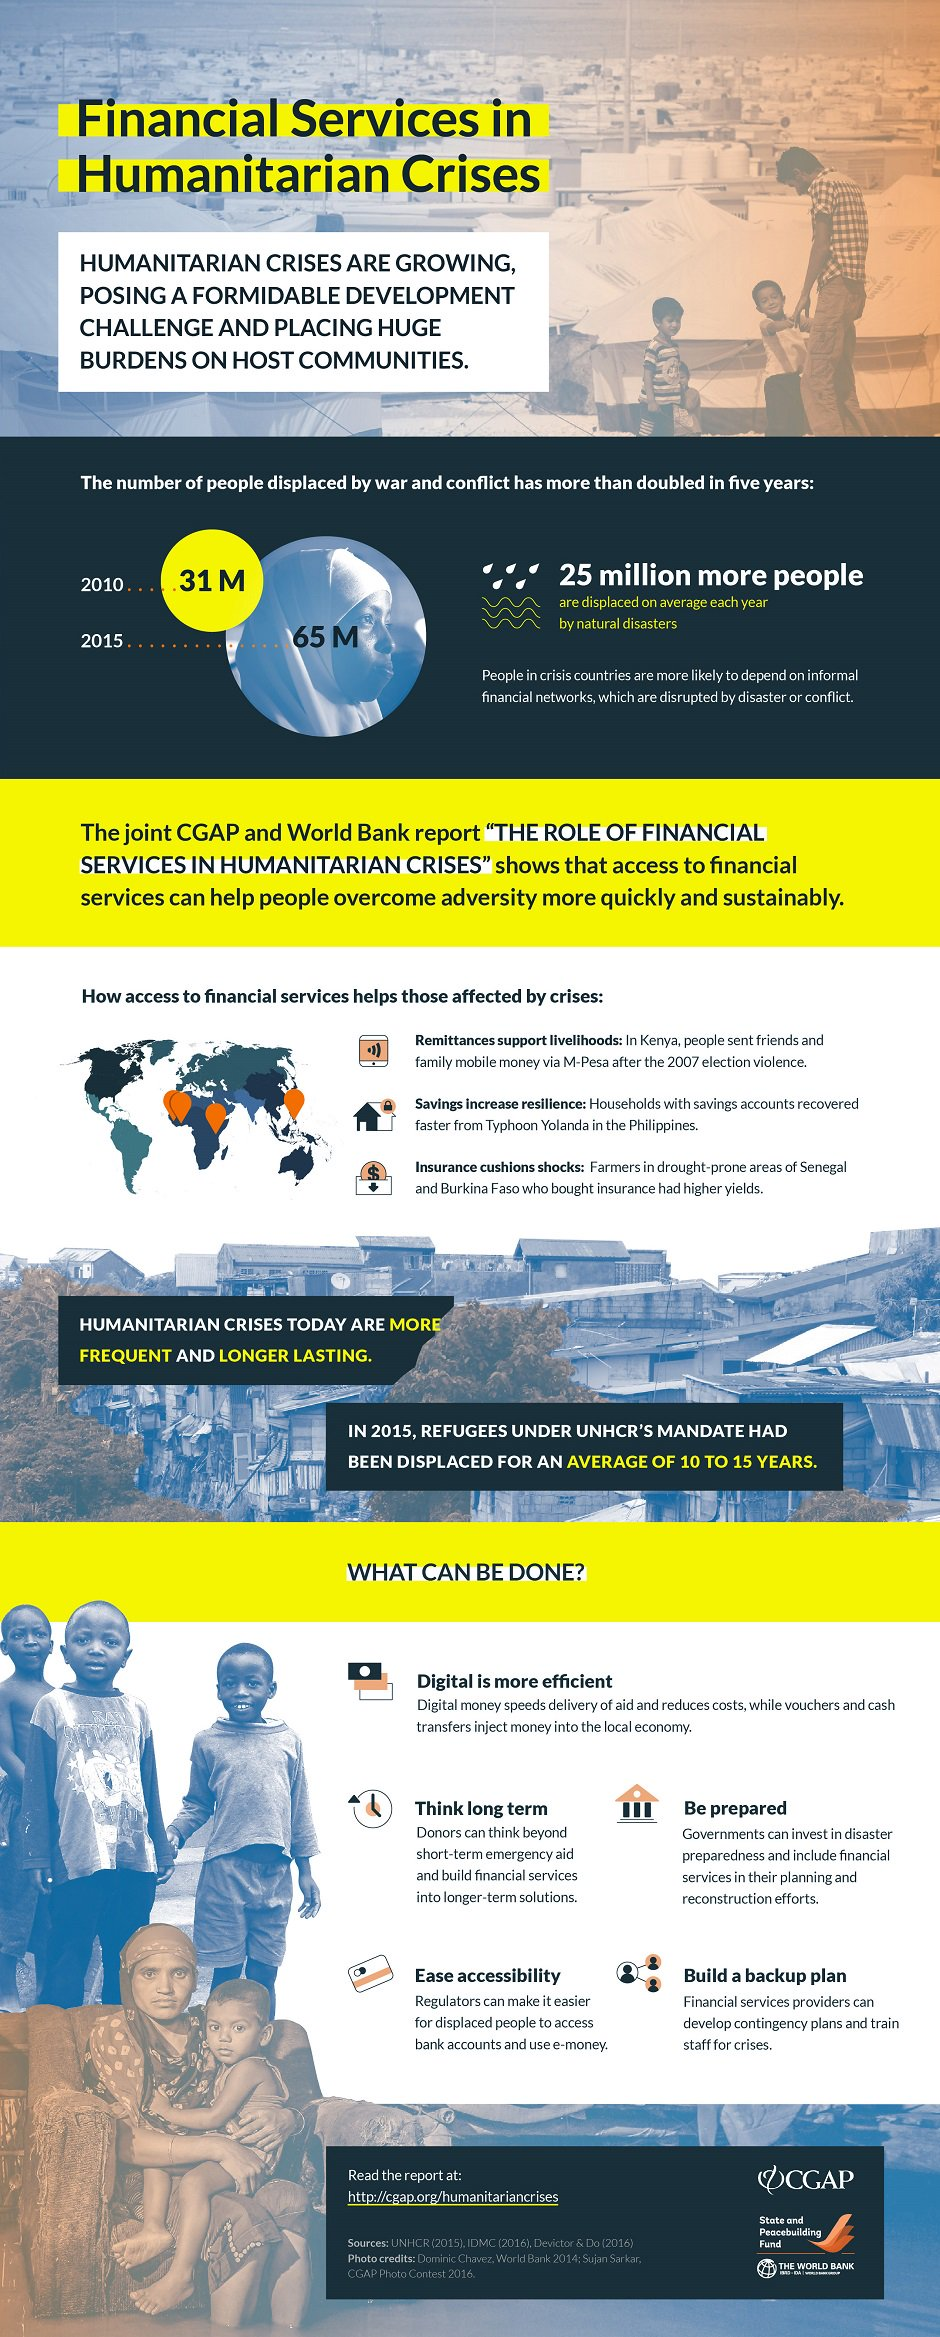 Infographic on Financial Services in Humanitarian Crises